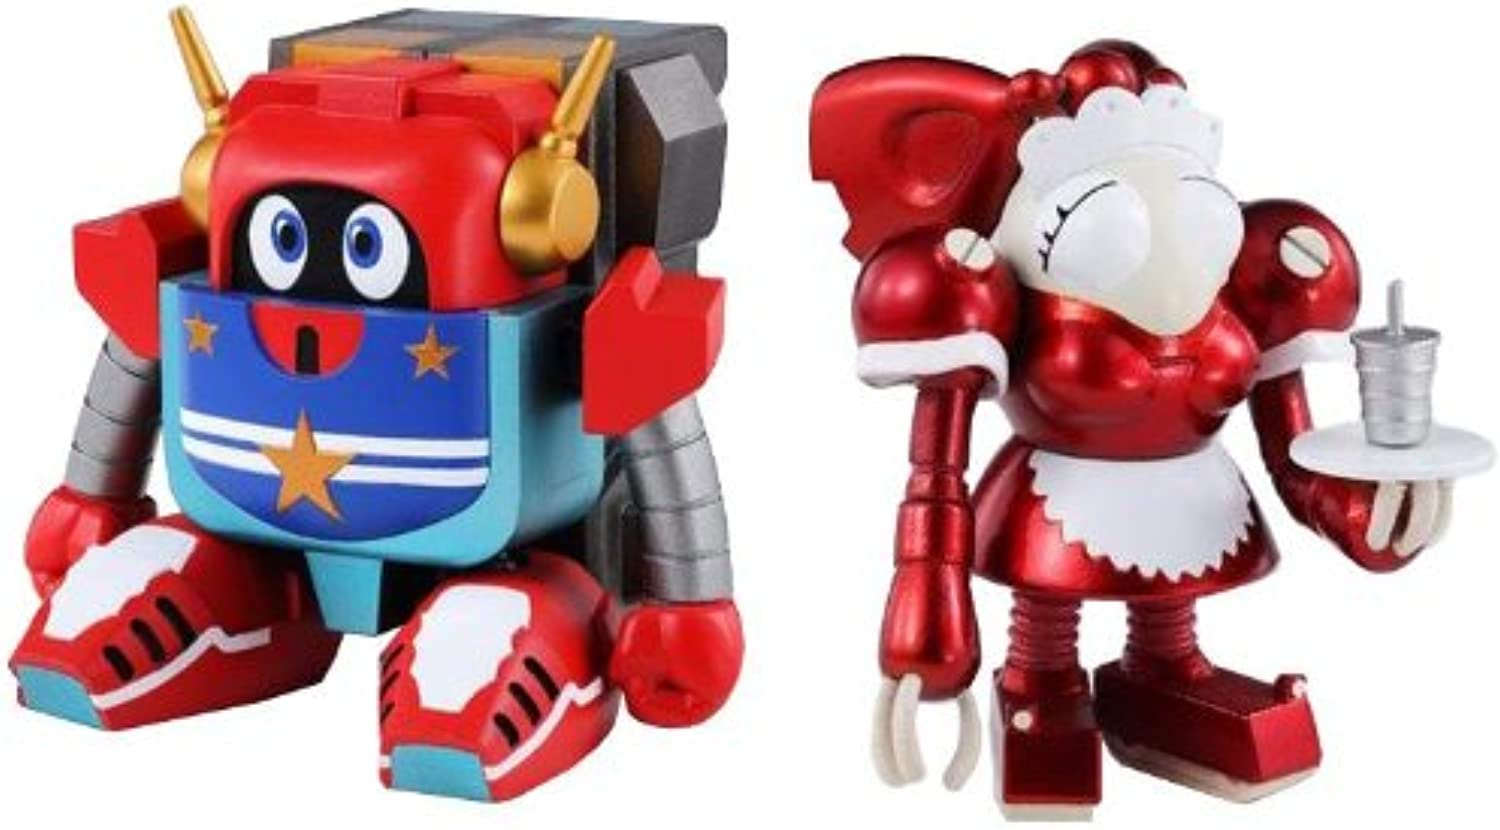 Super Robot Chogokin  The King of Braves GaoGaiGar  Mike & Piggy with Big Order Room